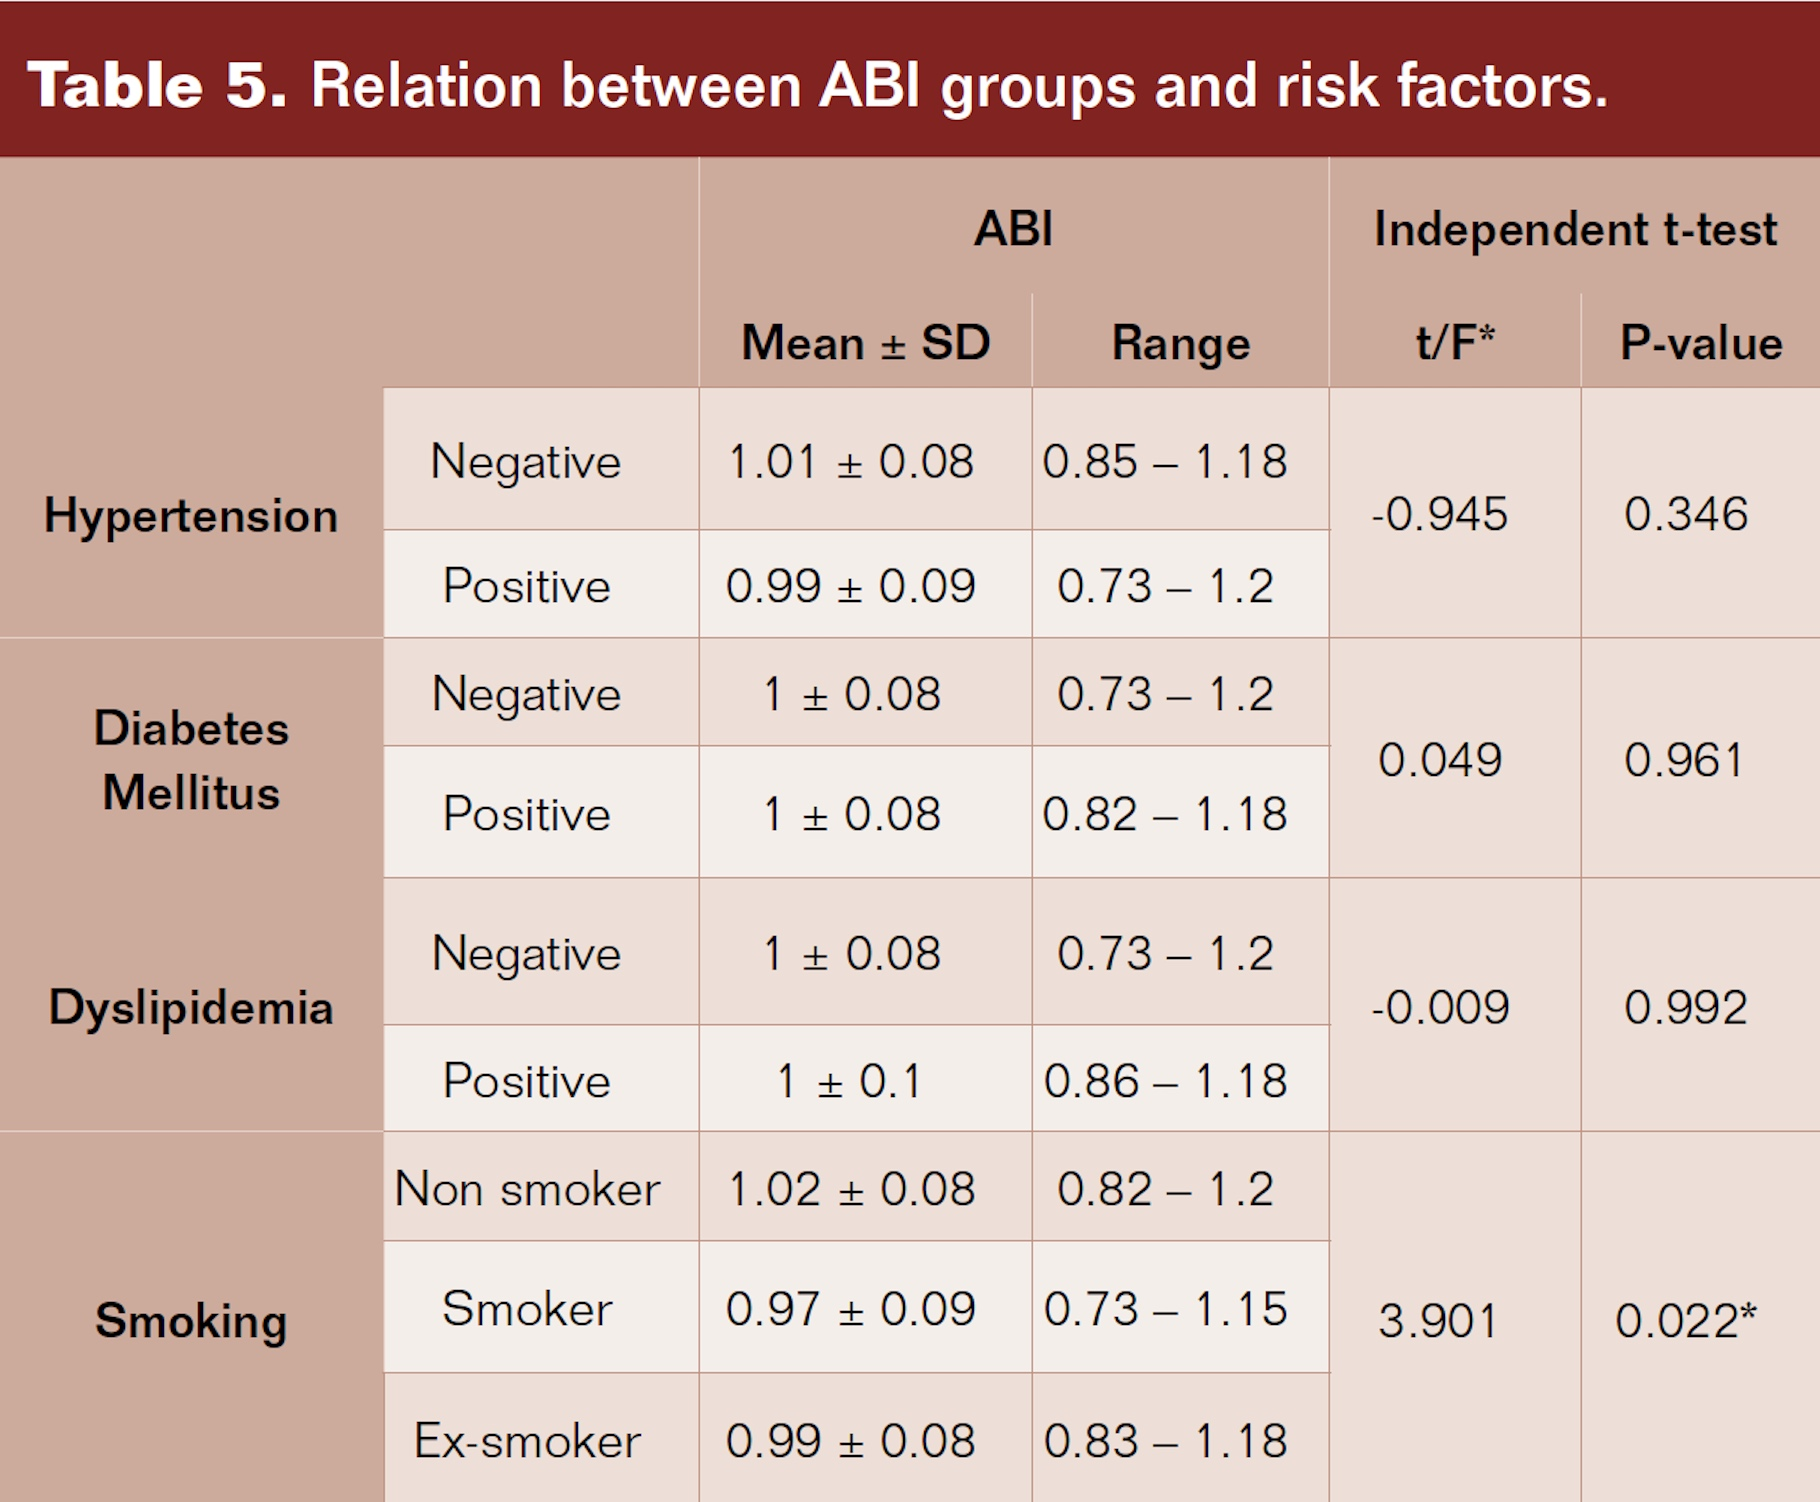 Relation between ABI groups and risk factors